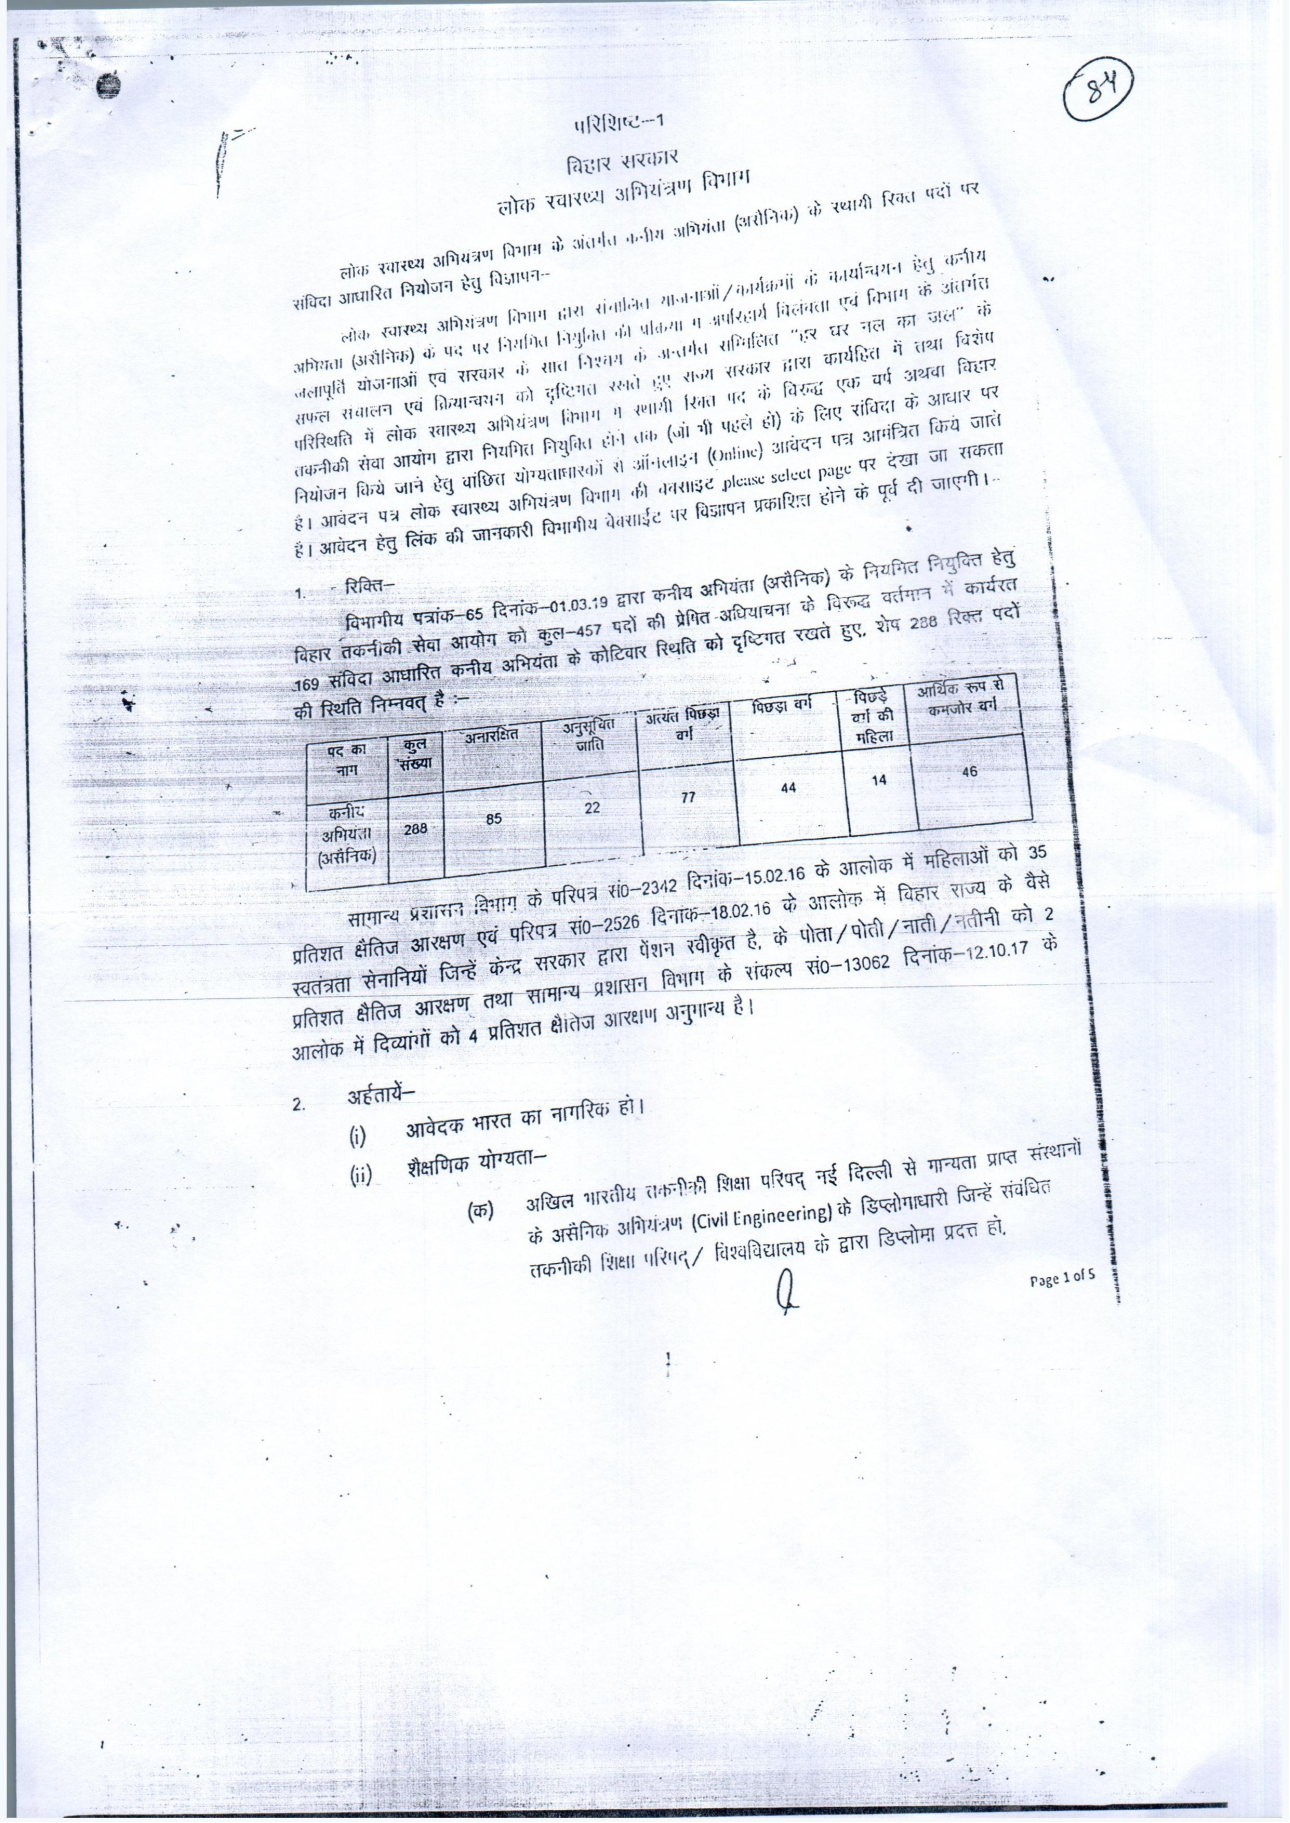 Recruitment of Junior Engineer (Civil) in Public Health Engineering Department, Govt of Bihar